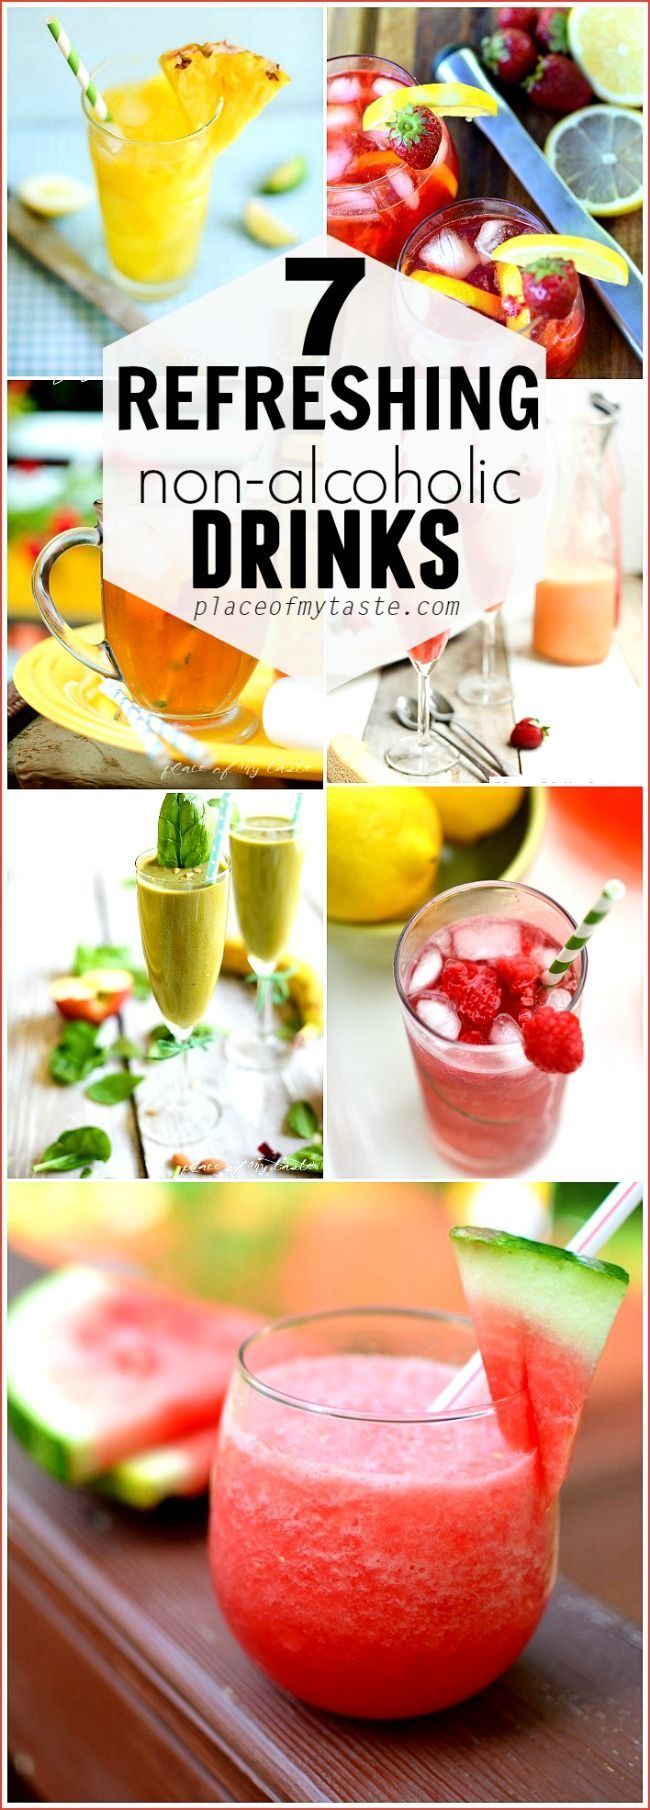 Non-alcoholic drinks! I love them all! So refreshing and delicious!